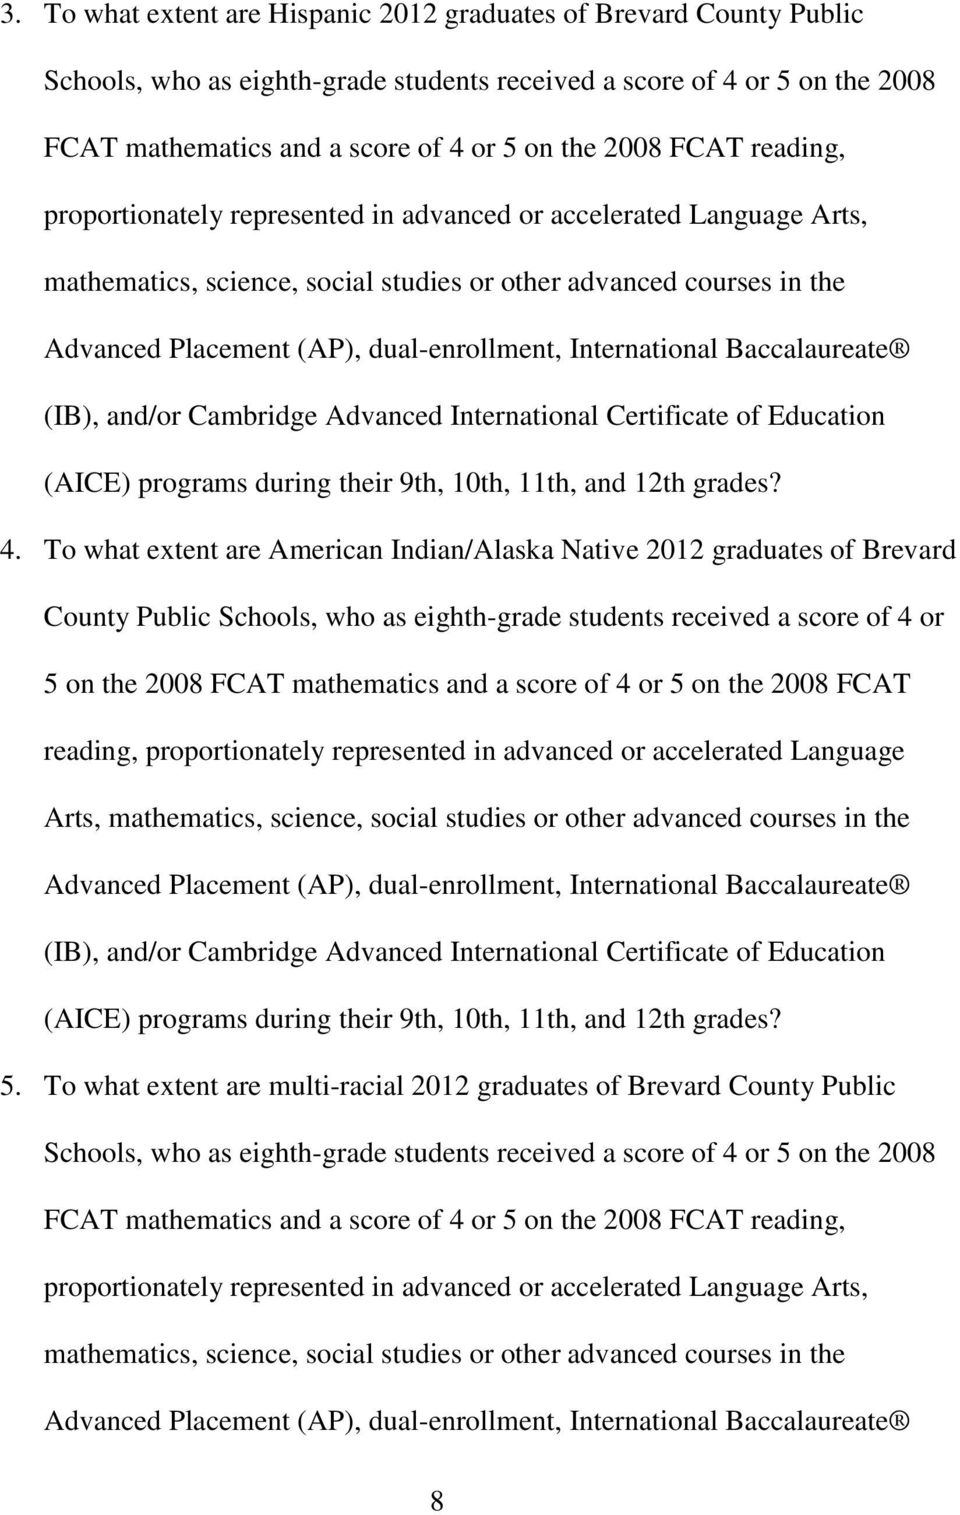 International Baccalaureate (IB), and/or Cambridge Advanced International Certificate of Education (AICE) programs during their 9th, 10th, 11th, and 12th grades? 4.